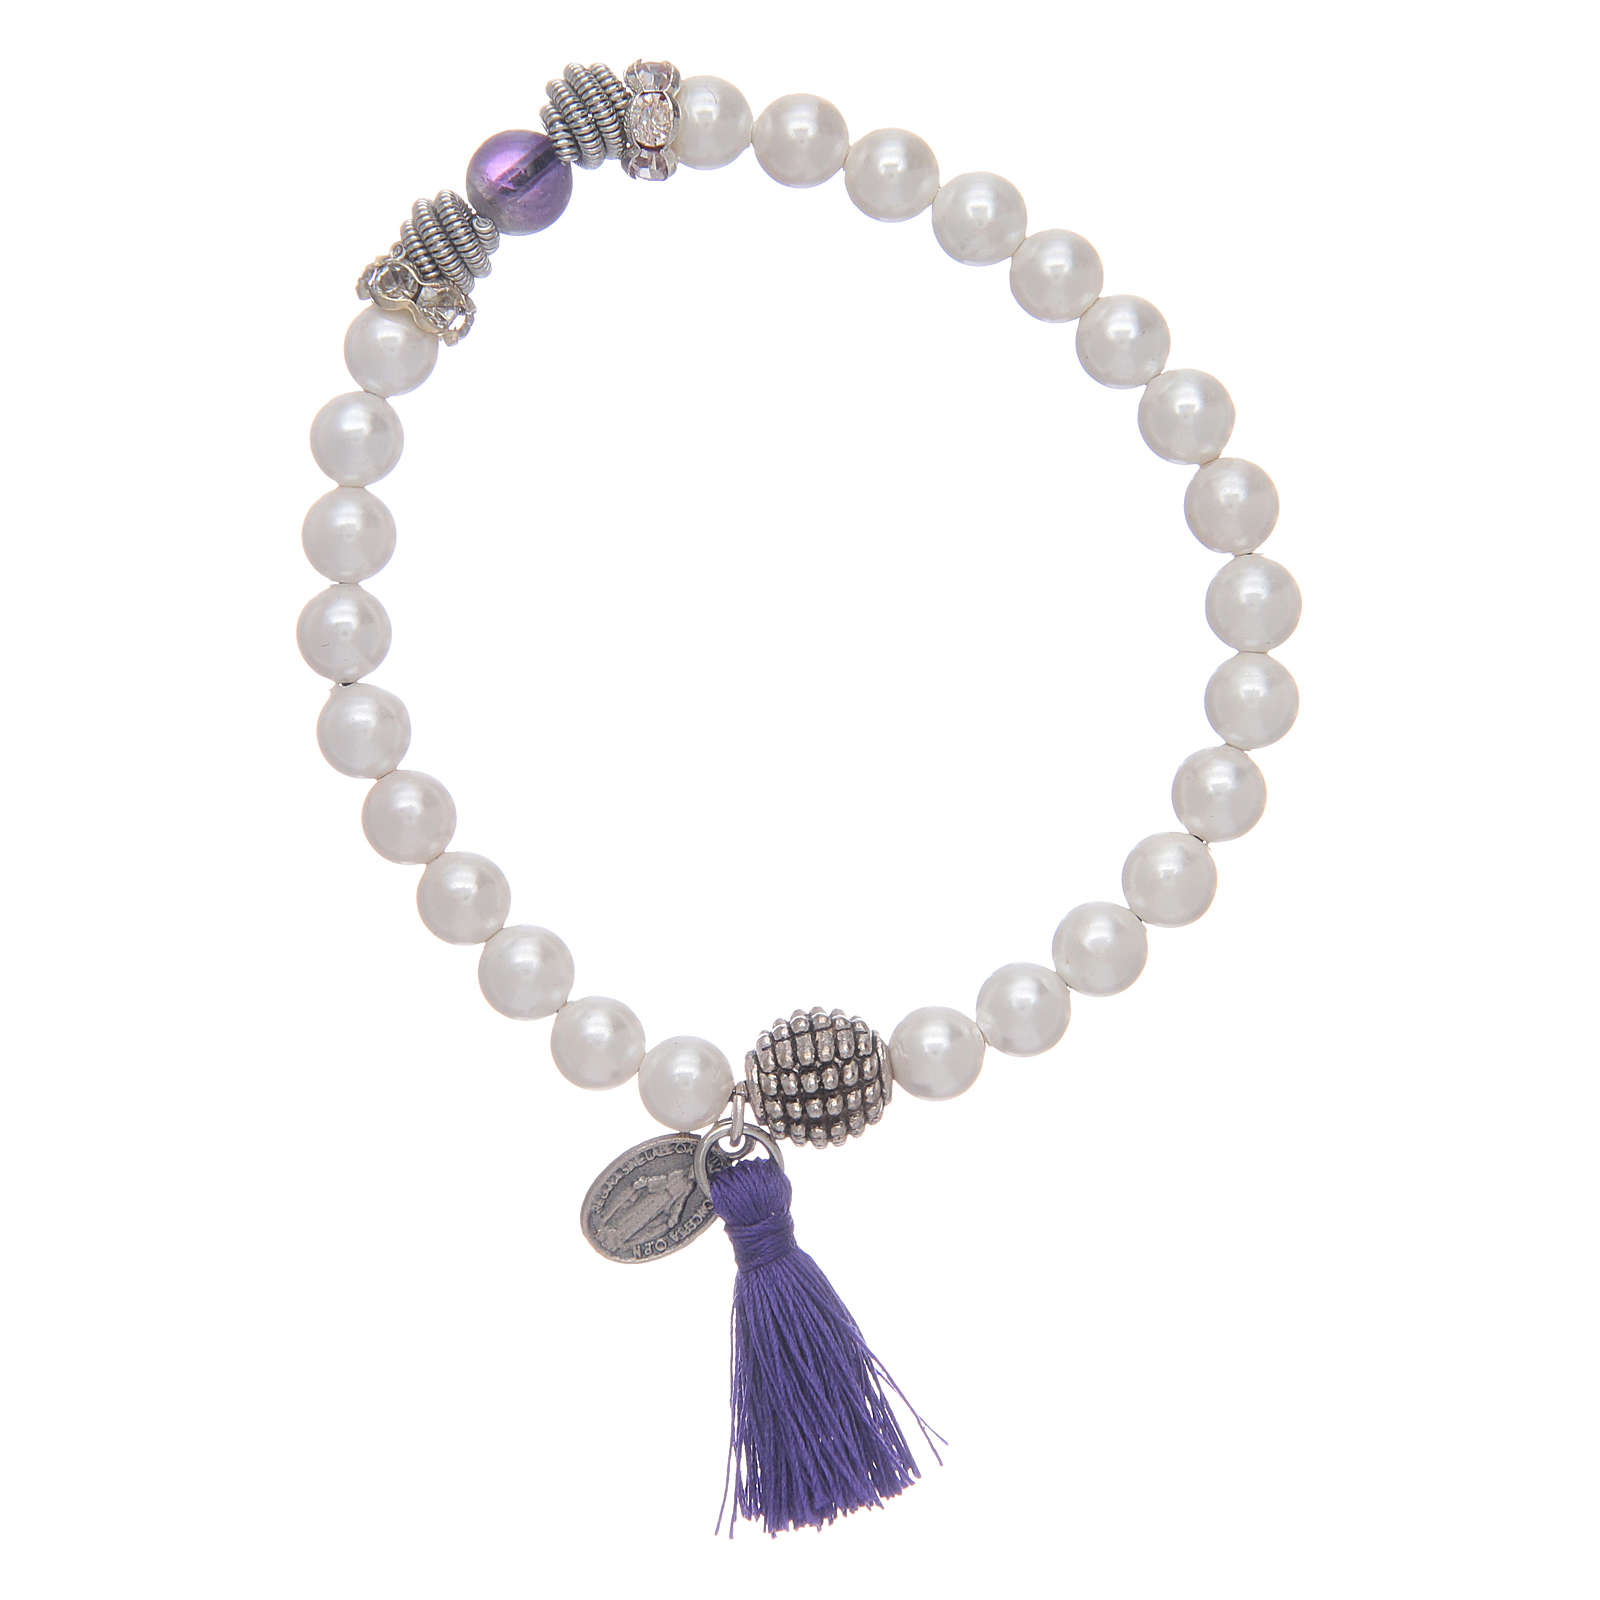 Bracelet with Miraculous medal and mother of pearl grains 4